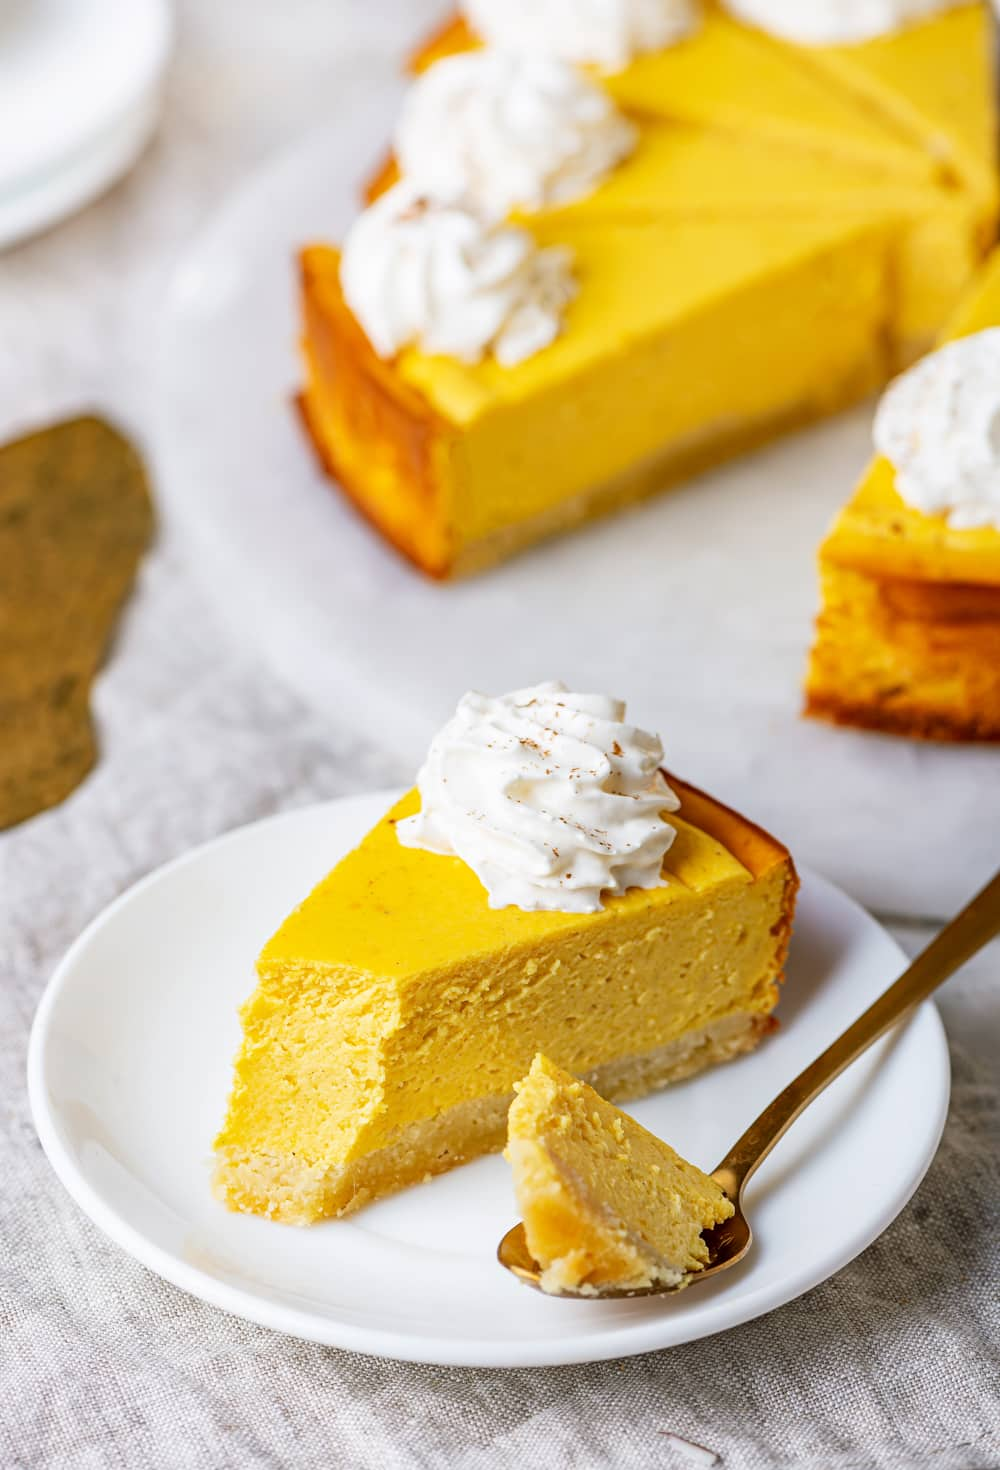 A slice of pumpkin cheesecake on a white plate with the rest of the slices behind it.